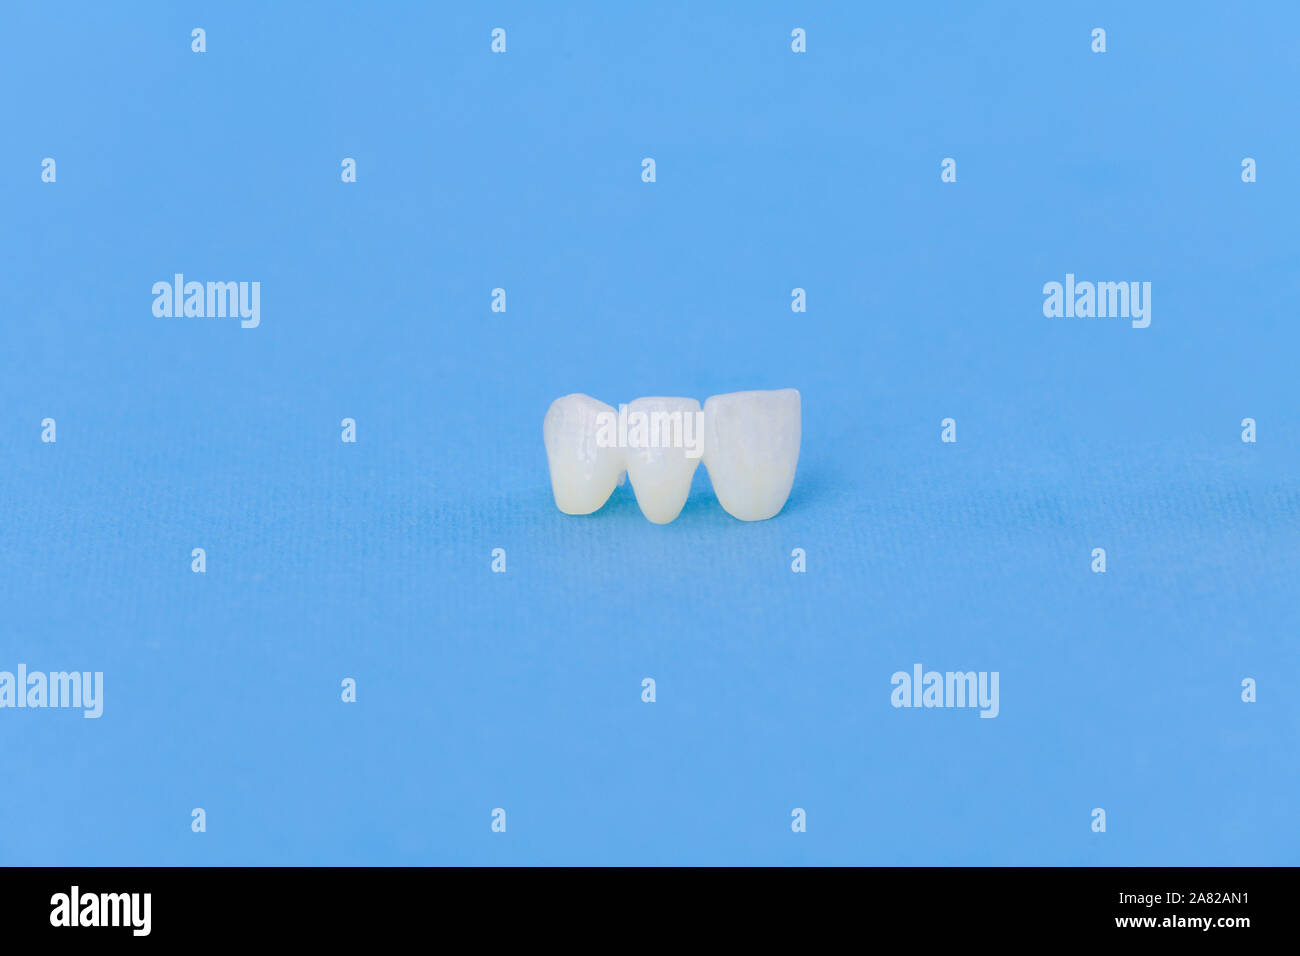 Free Dental Clinic High Resolution Stock Photography And Images Page 2 Alamy